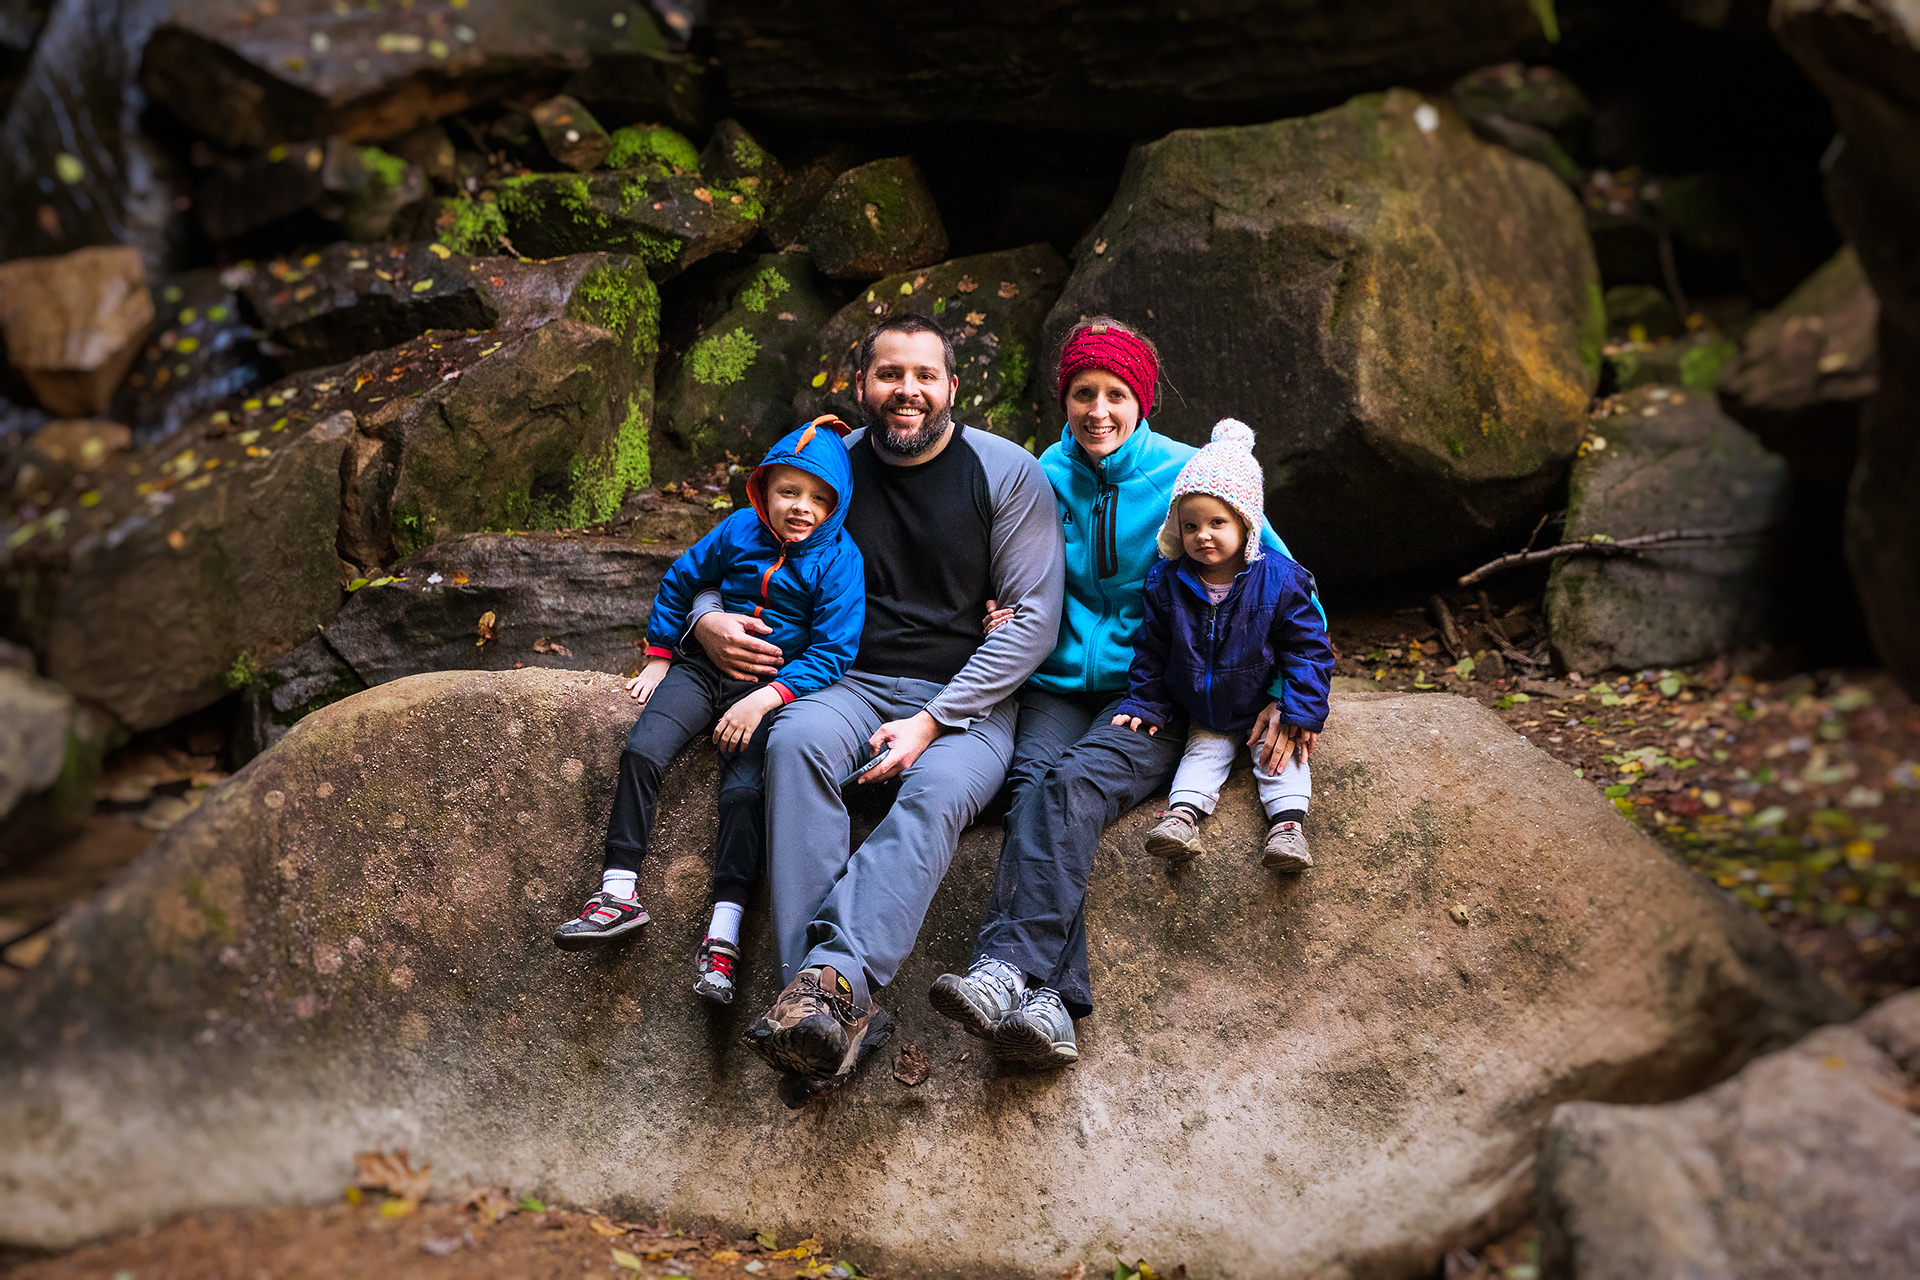 Hiking with my family in Hocking Hills.